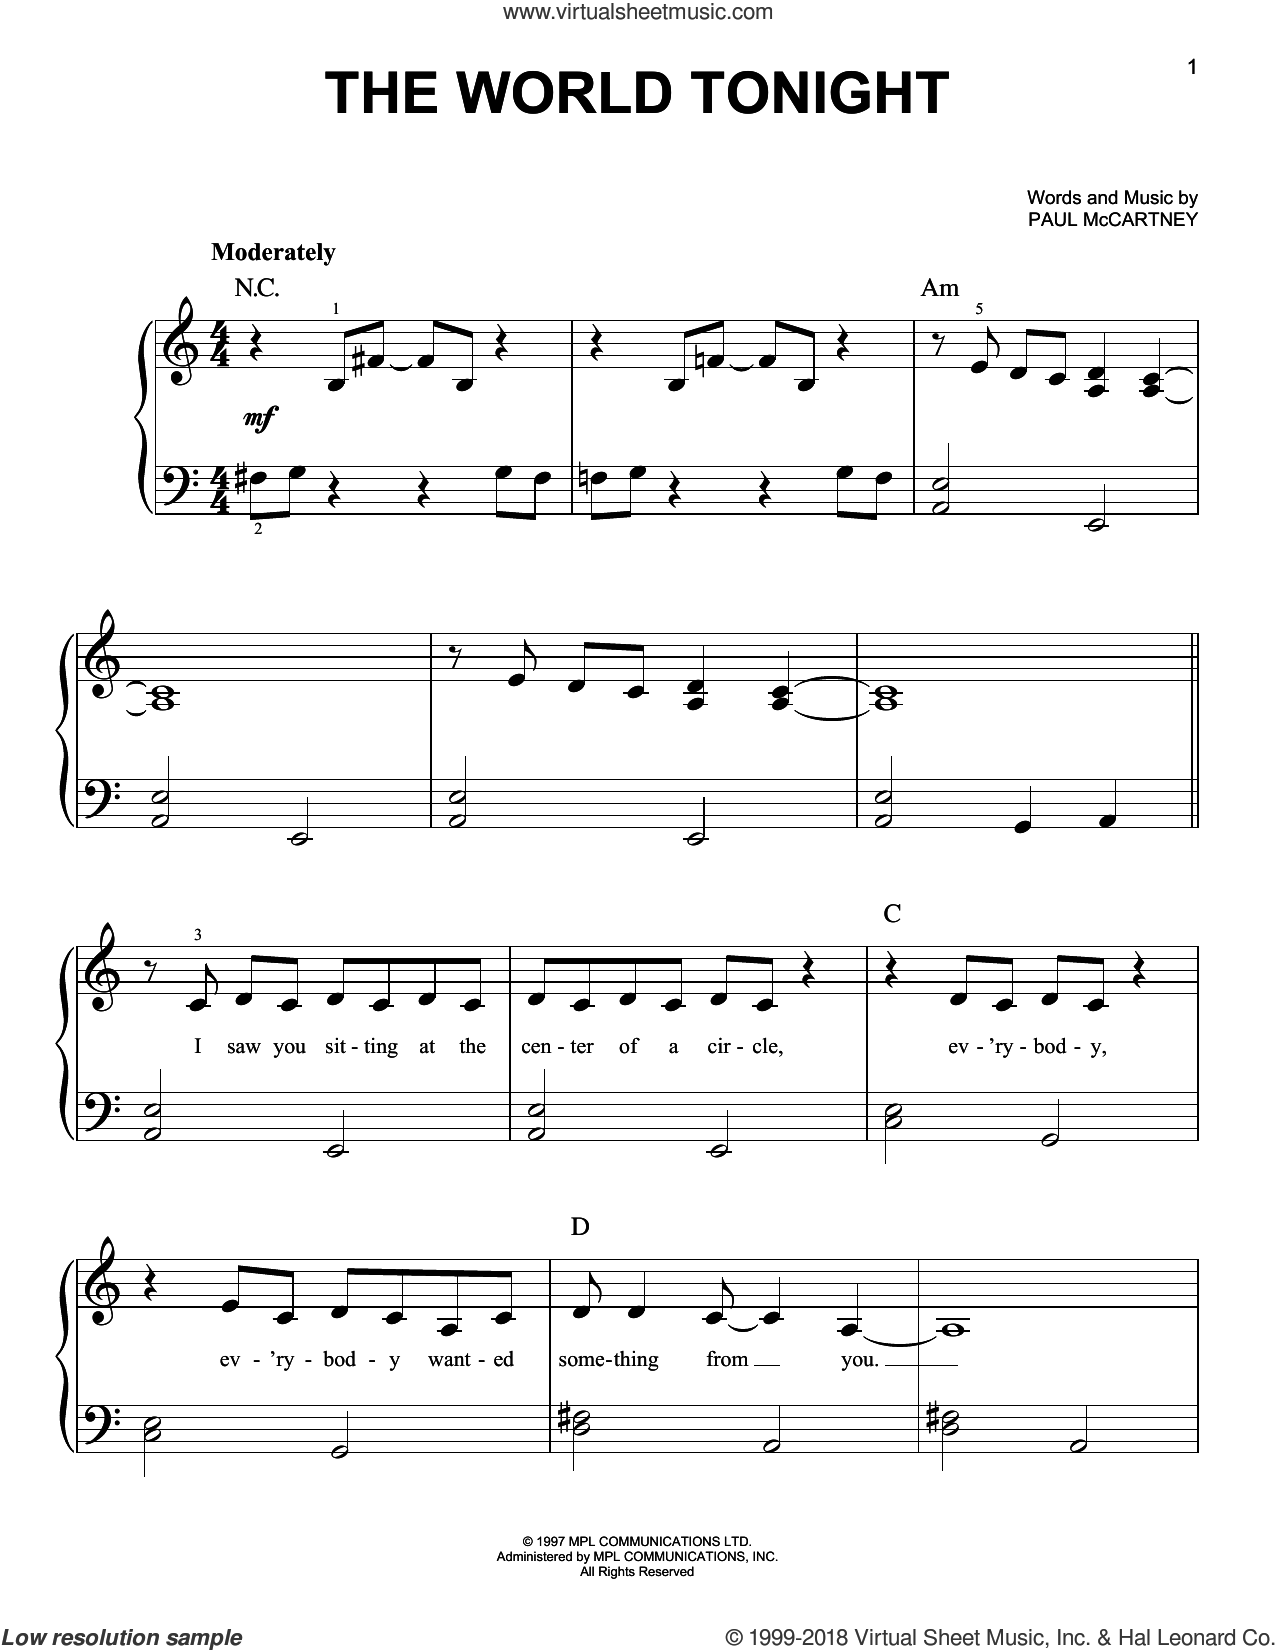 The World Tonight sheet music for piano solo by Paul McCartney, easy skill level